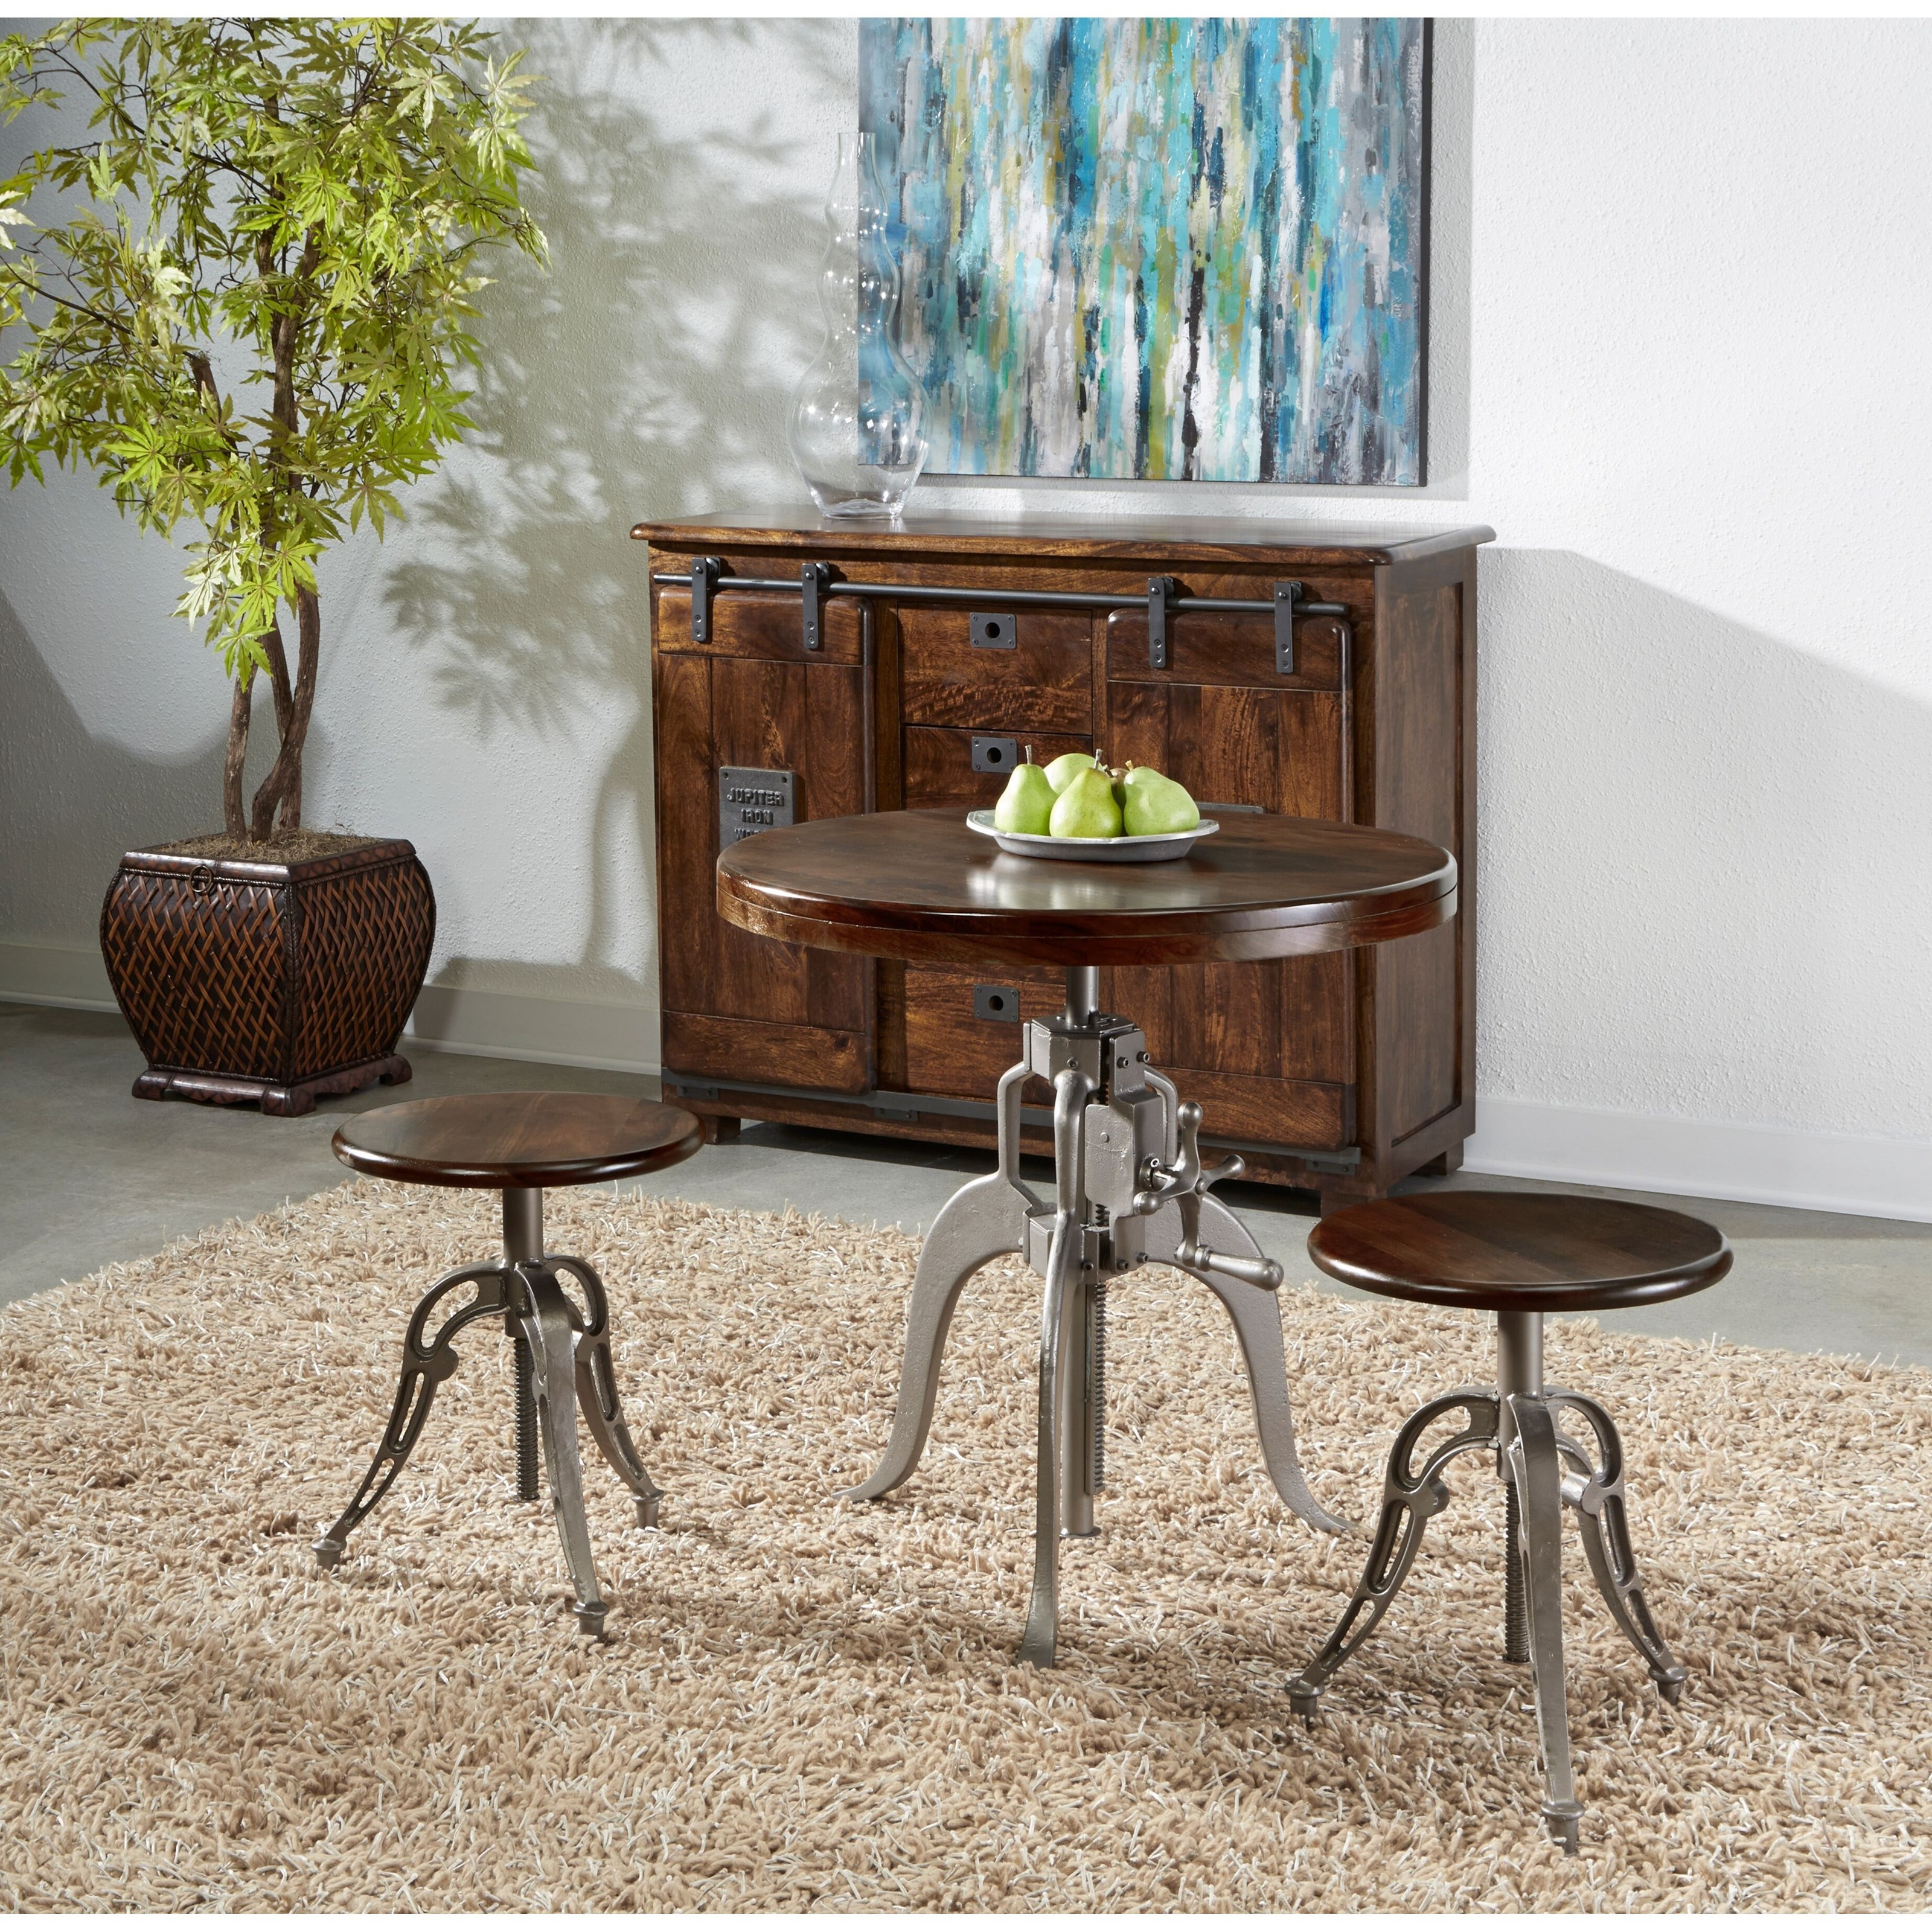 Bristol 3-Piece Adjustable Pub Table and Chair Set by Coast to Coast Imports at Zak's Home